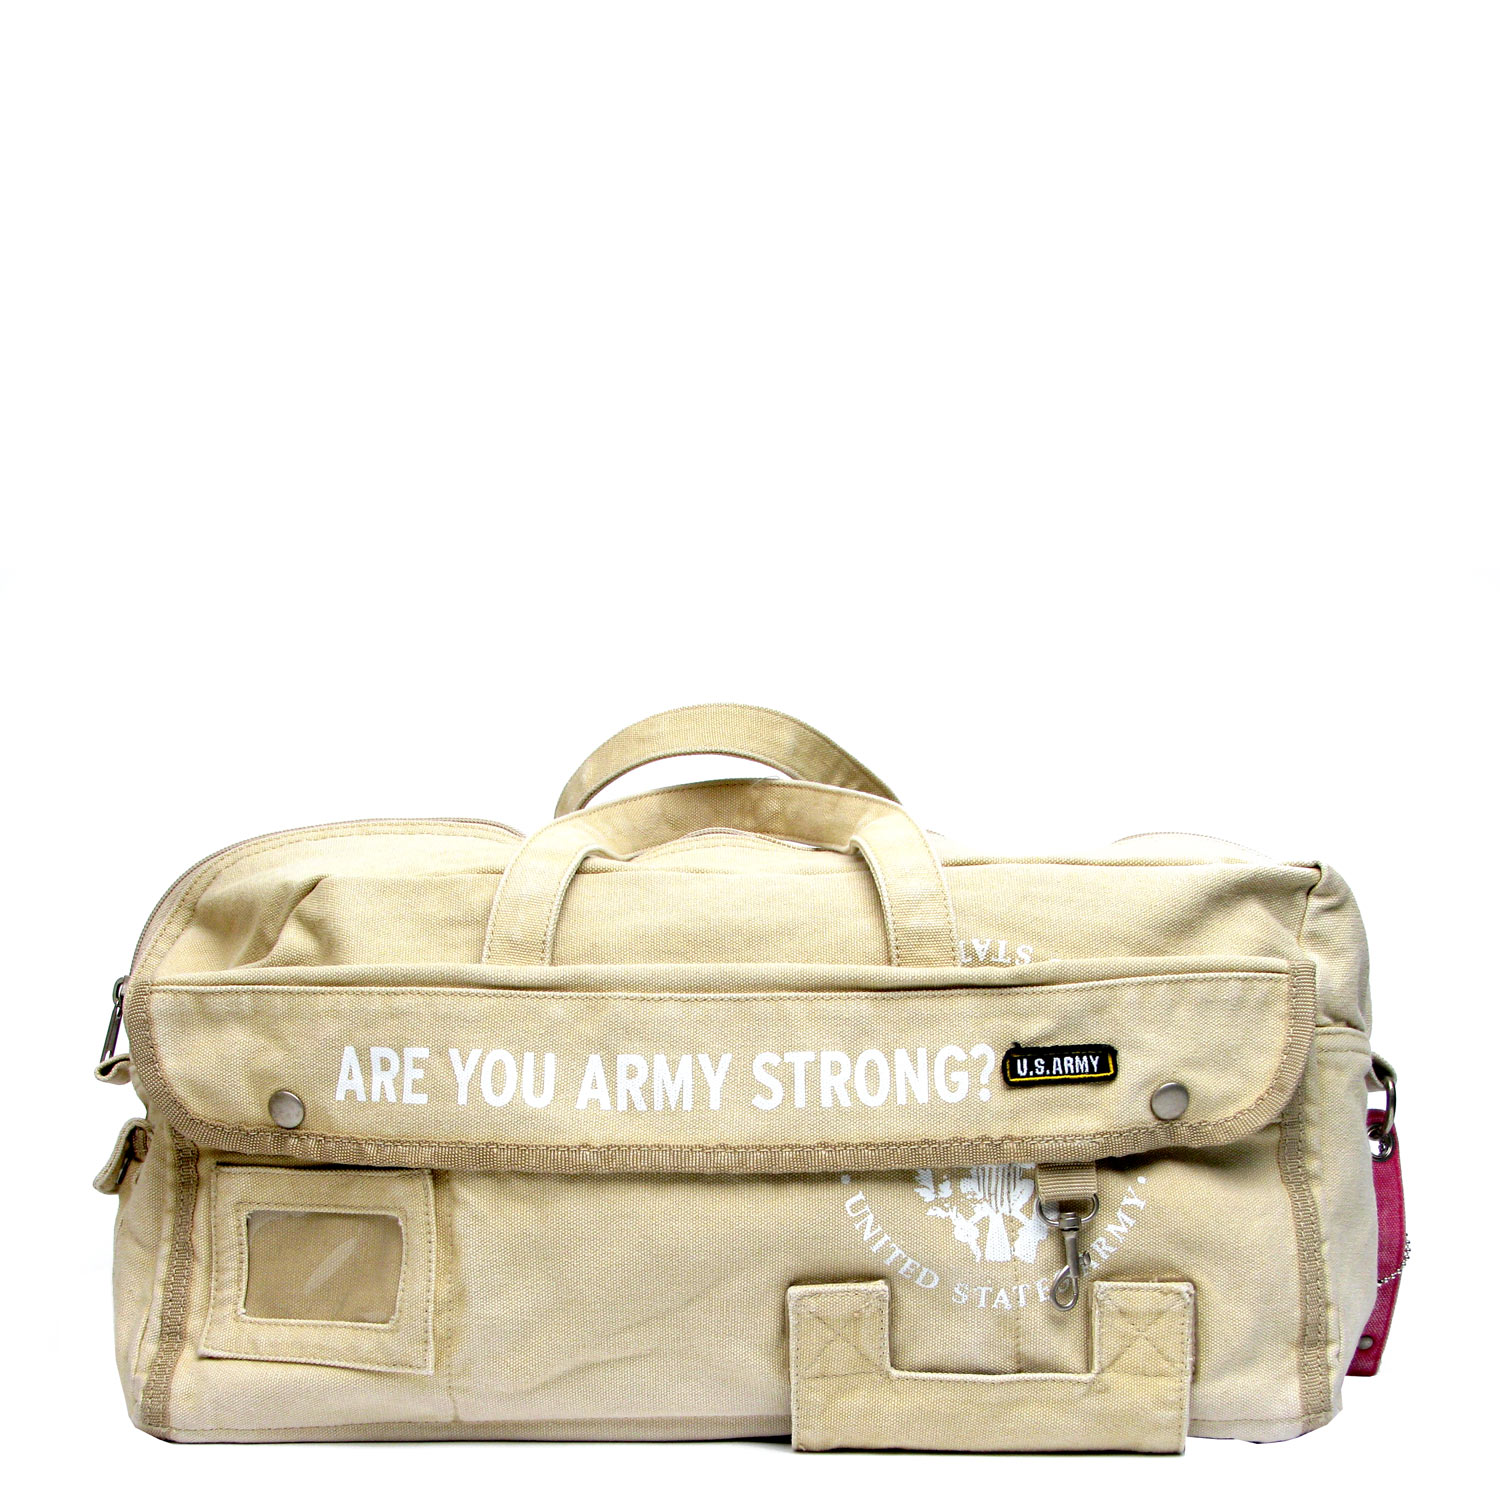 US Army Drum Duffle Bag – Sand